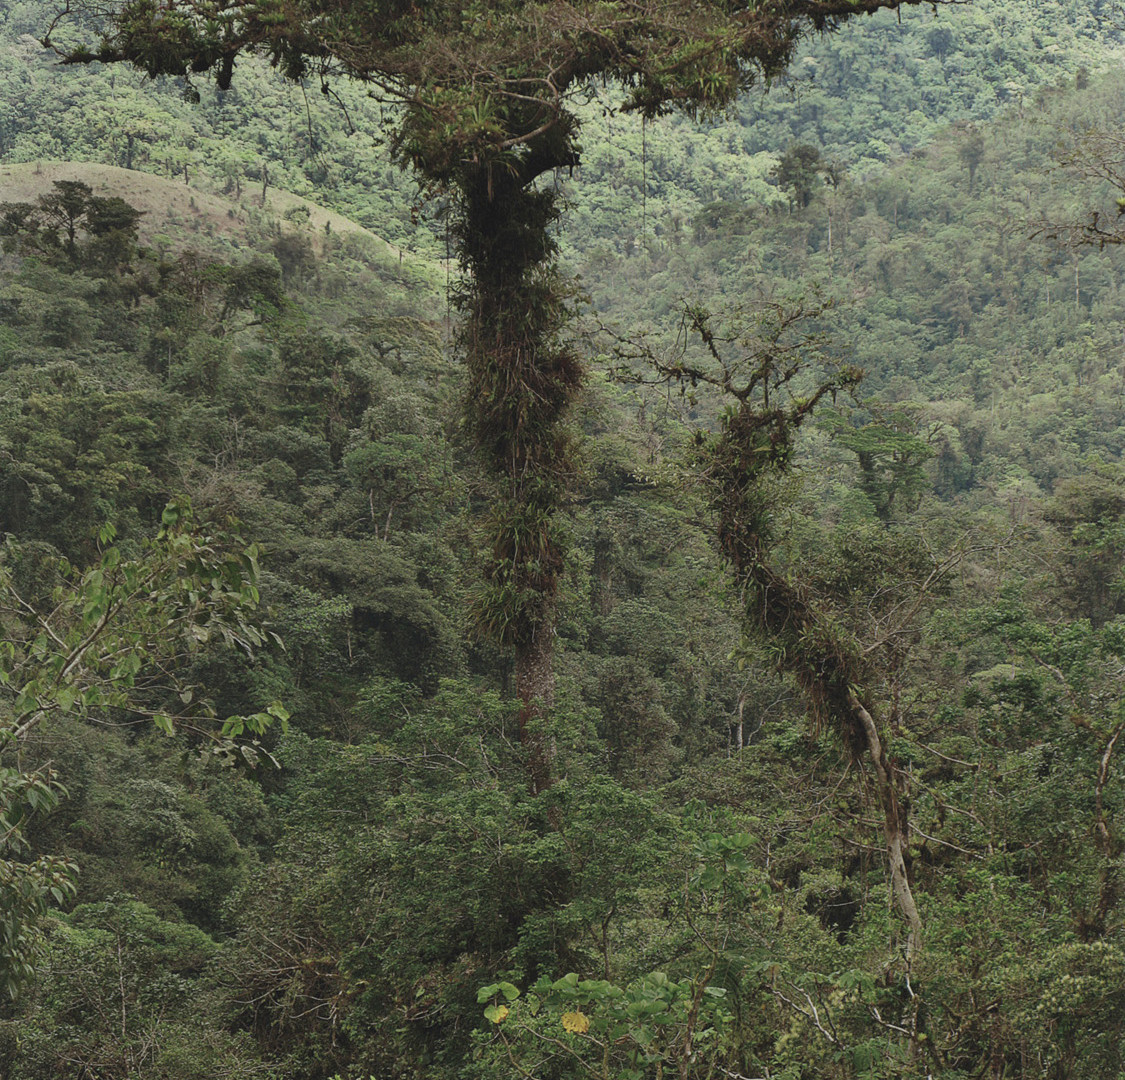 Emmet Gowin, Primary mist forest near the Continental Divide, Chiruqui Province, Panama, 2008